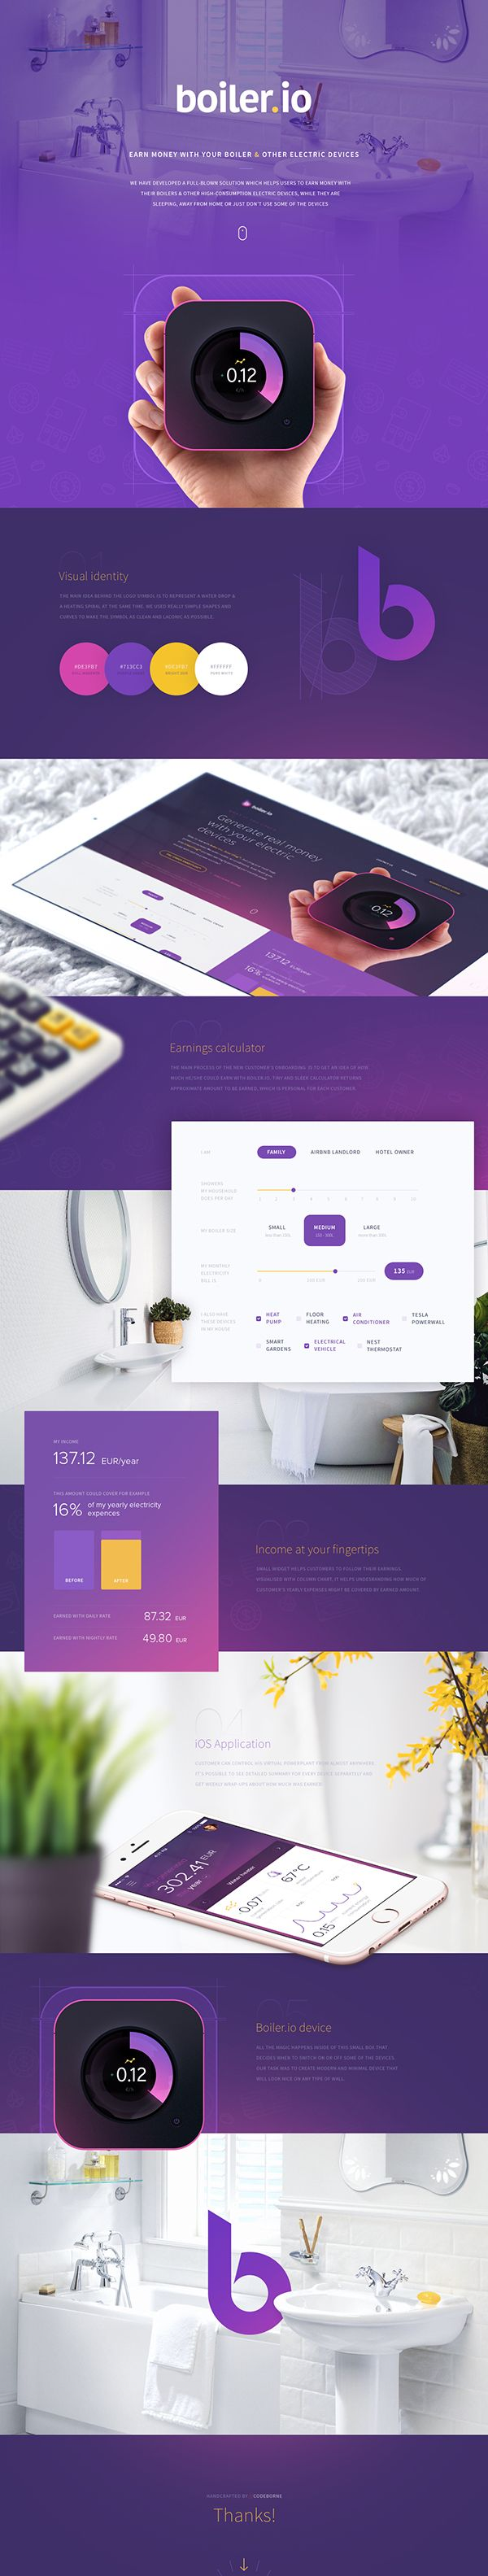 Best 25+ Web design uk ideas on Pinterest | Web design sites, Web ...